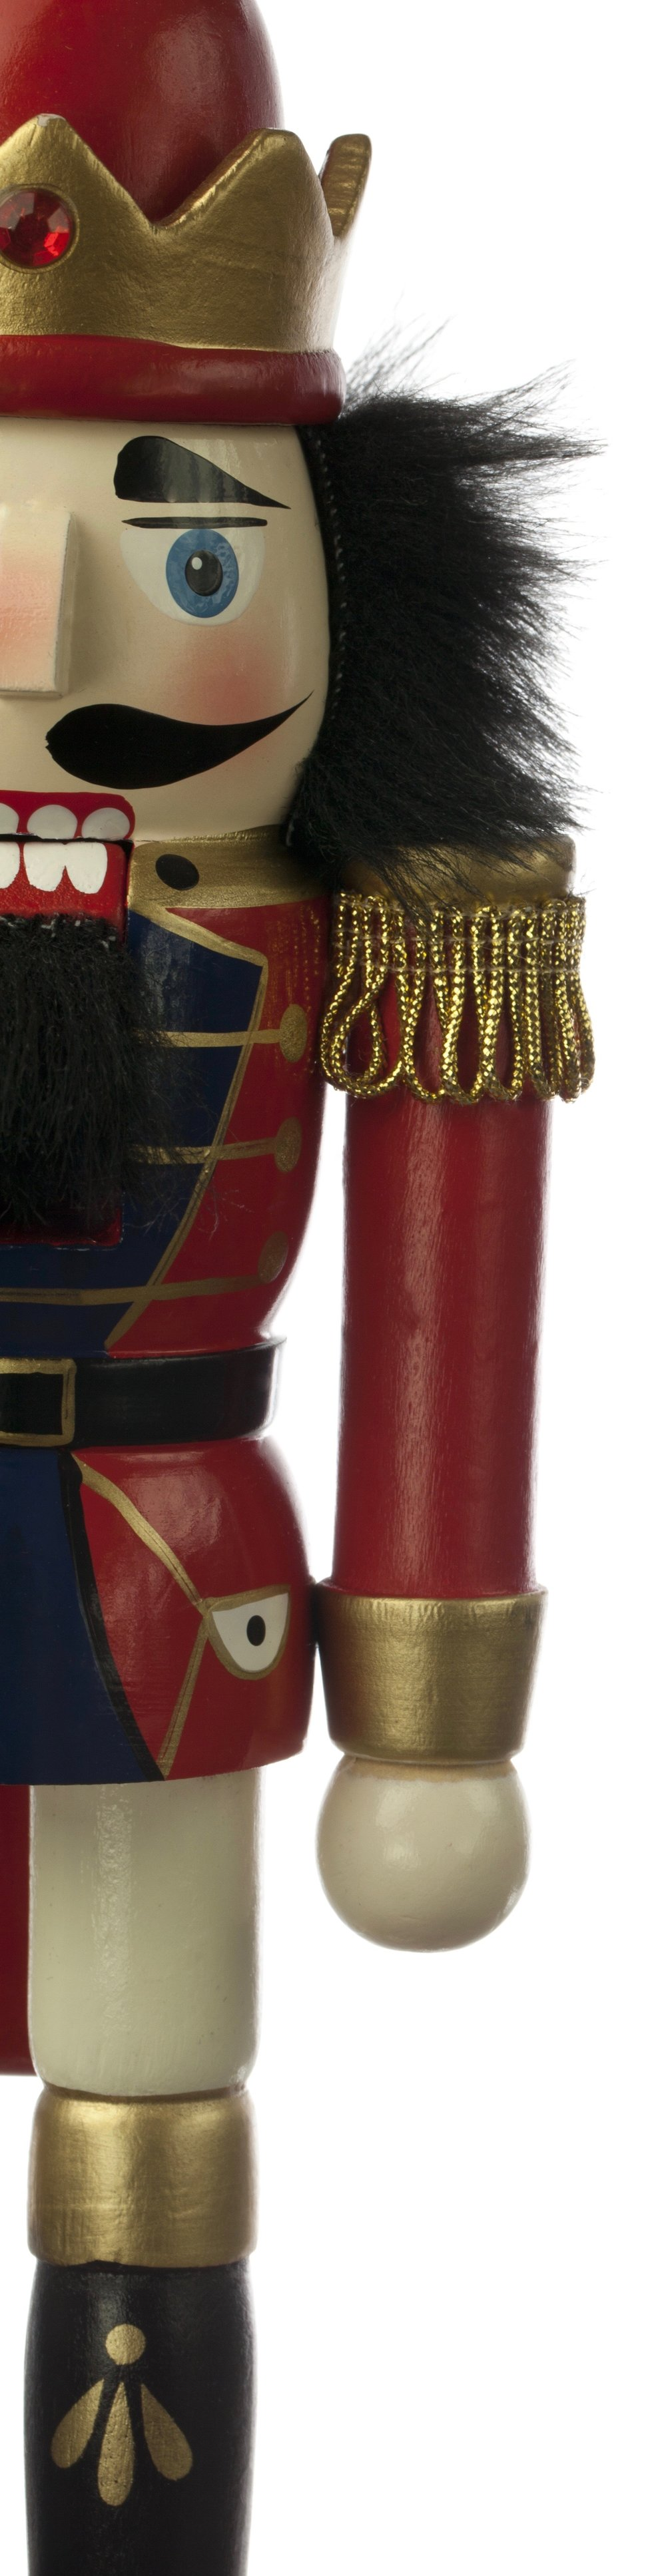 Nutcracker image-AdobeStock_46176651_cropped.jpg